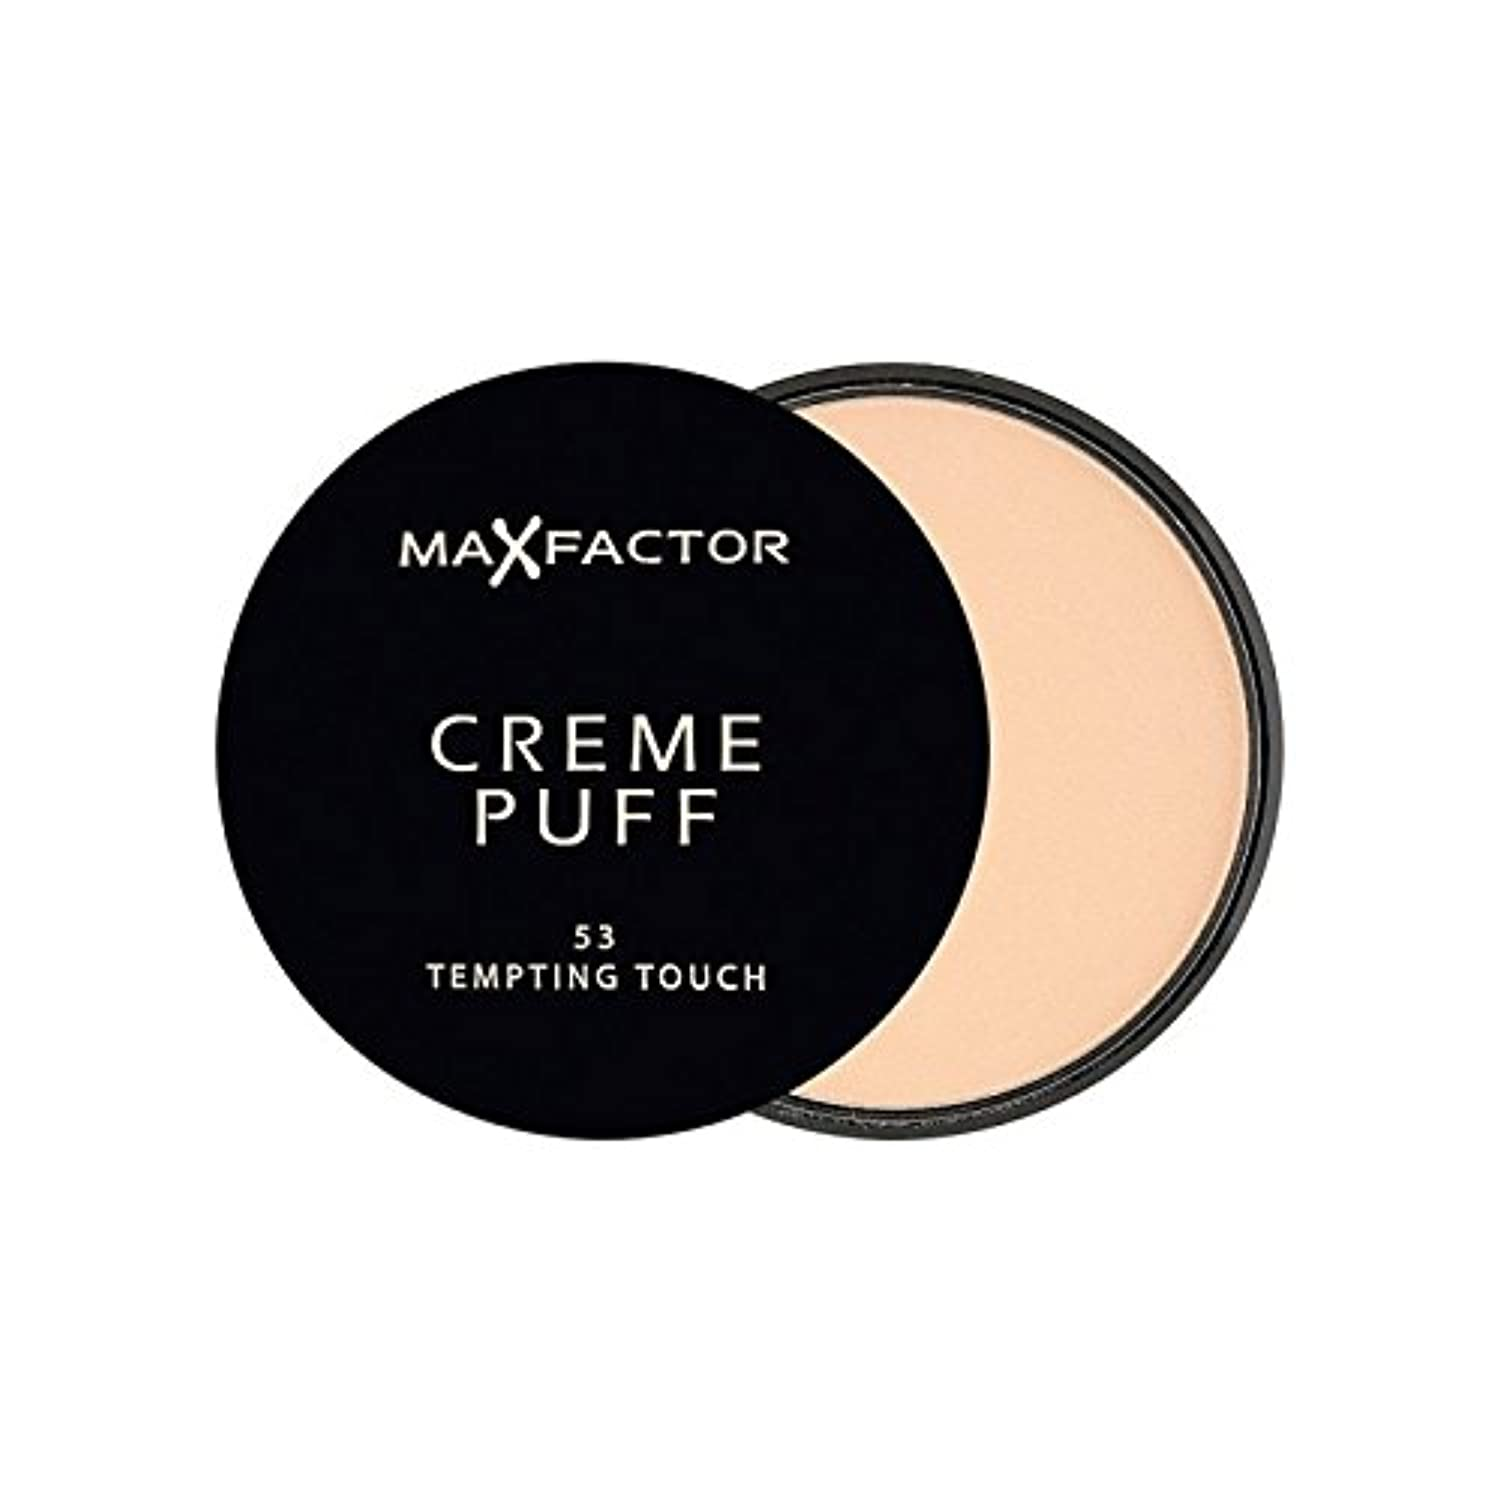 Max Factor Creme Puff Powder Compact Tempting Touch 53 (Pack of 6) - マックスファクタークリームパフパウダーコンパクト魅力的なタッチ53 x6 [並行輸入品]